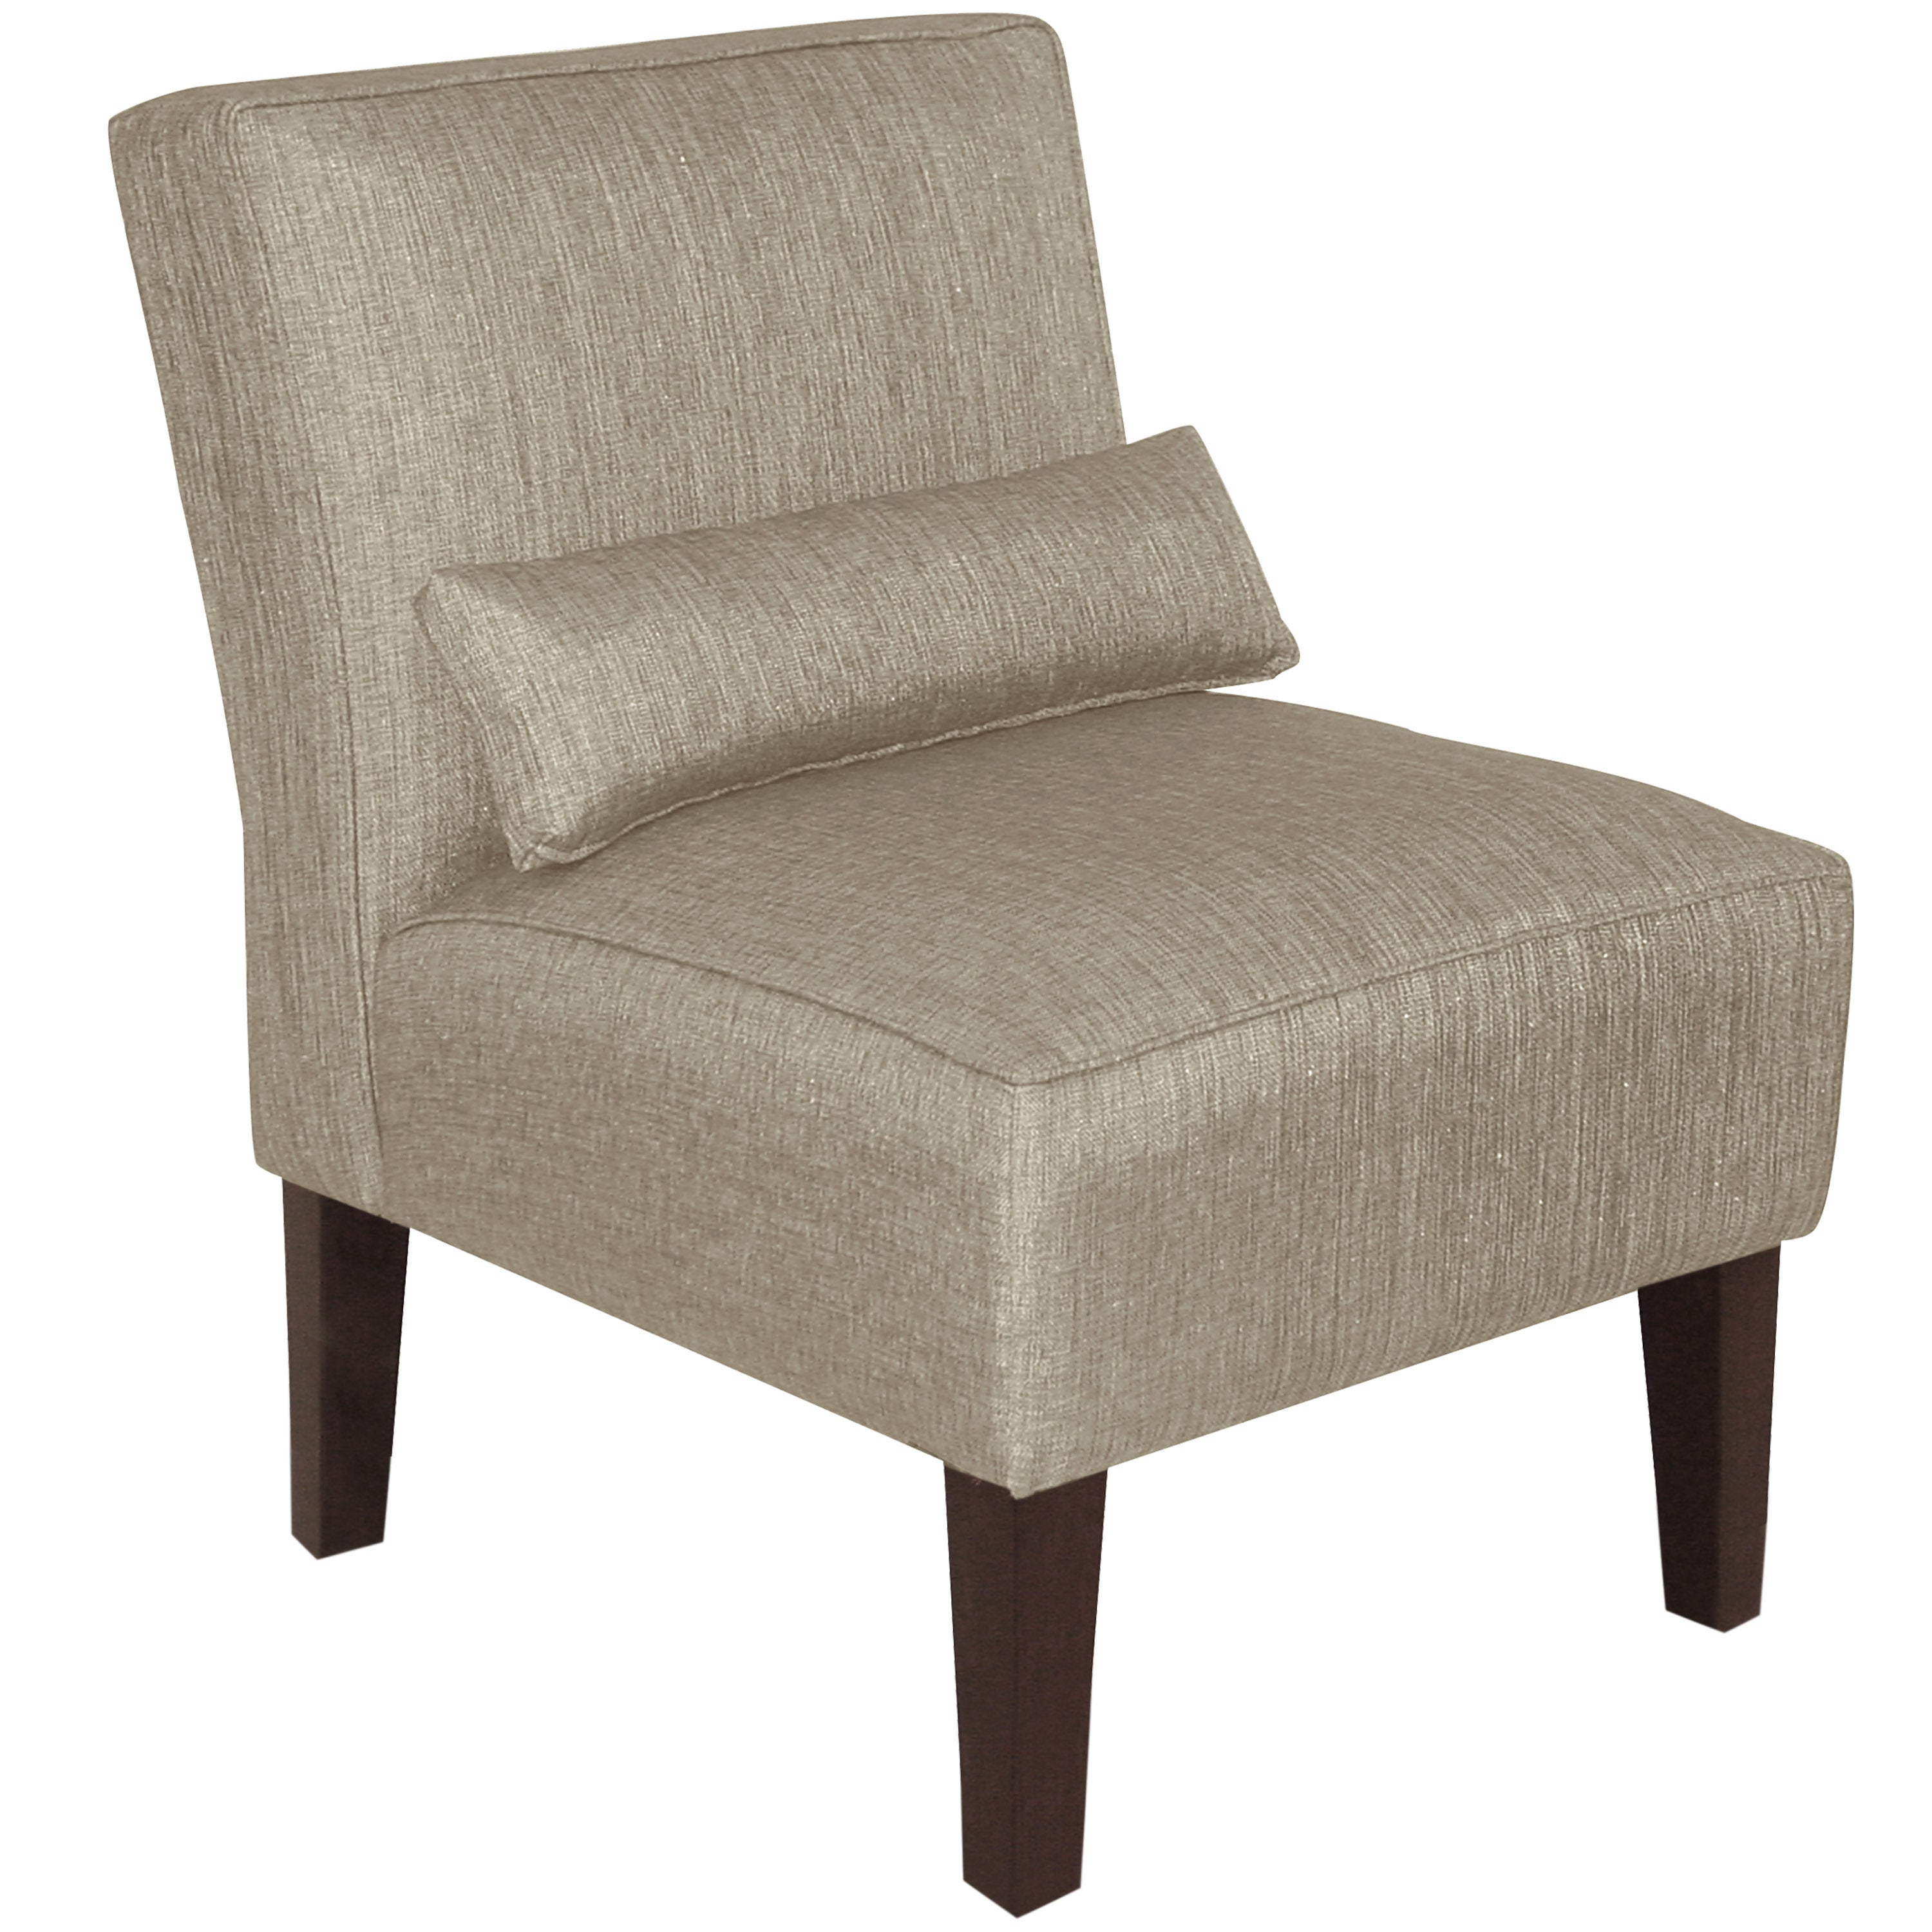 Shop skyline furniture groupie pewter polyester viscose armless slipper chair on sale free shipping today overstock com 12853426